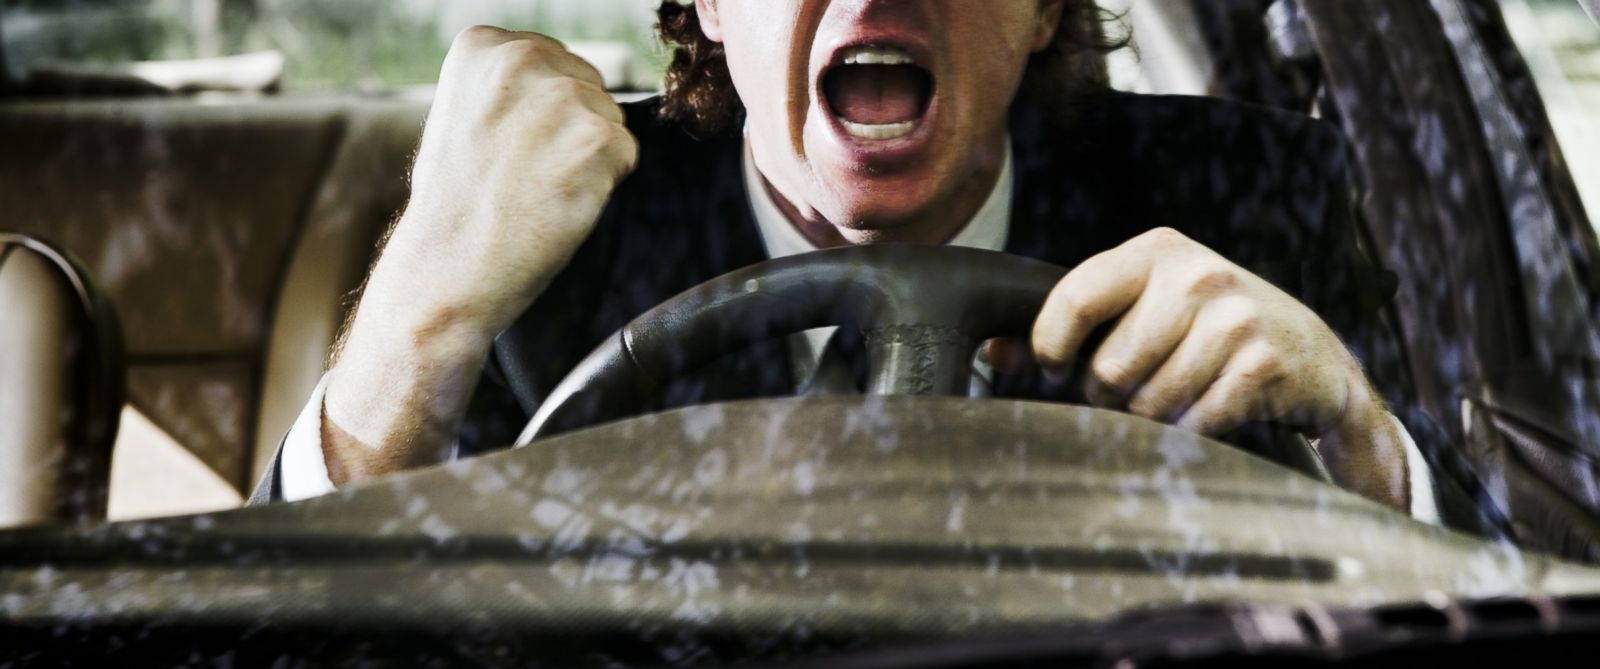 PHOTO:According to Virginia Tech Transportation Institute researchers, drivers increase their crash risk when they get behind the wheel while observably angry, sad, crying, or emotionally agitated.